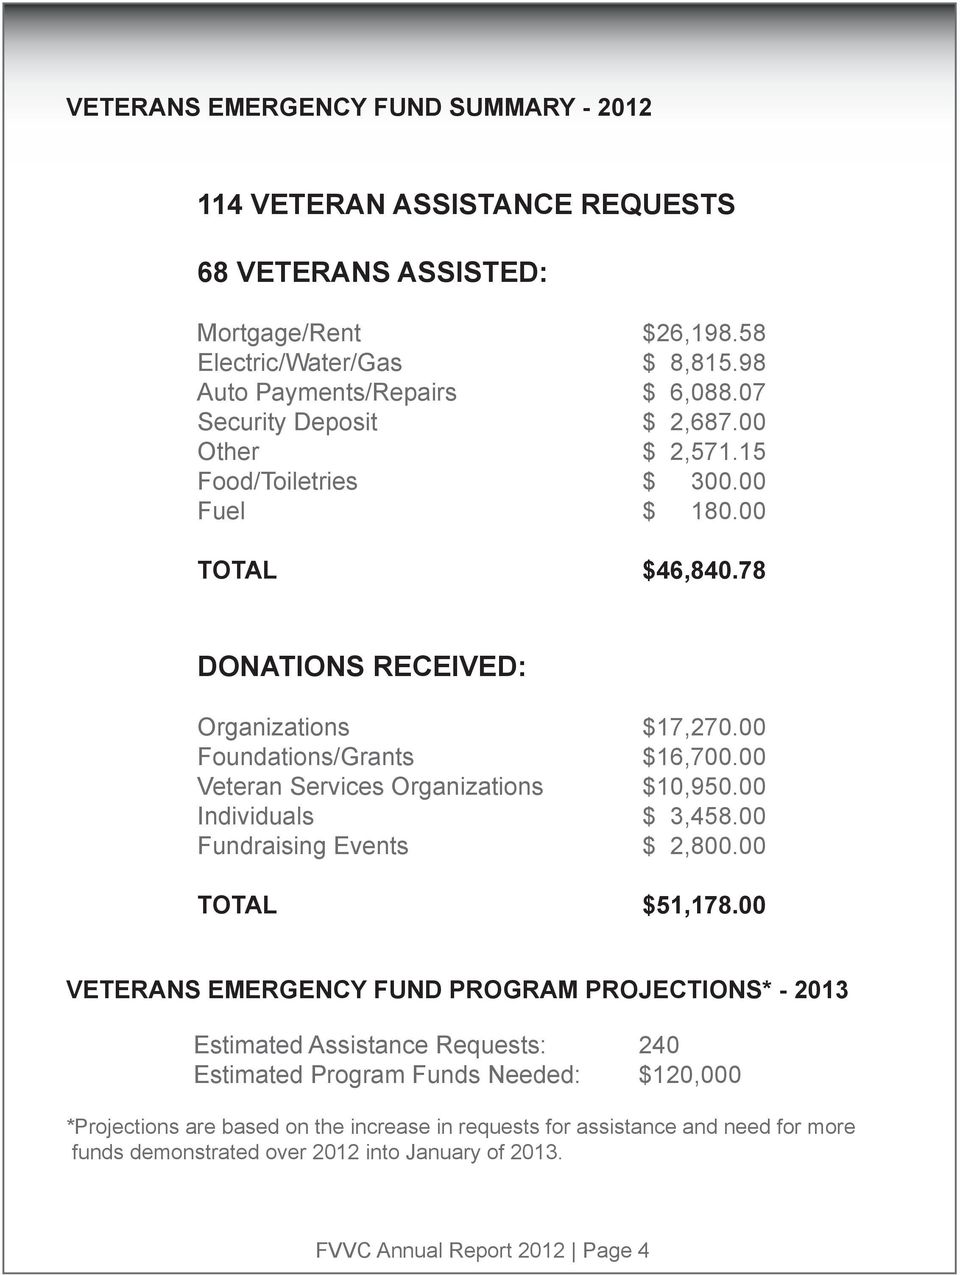 00 Veteran Services Organizations $10,950.00 Individuals $ 3,458.00 Fundraising Events $ 2,800.00 TOTAL $51,178.